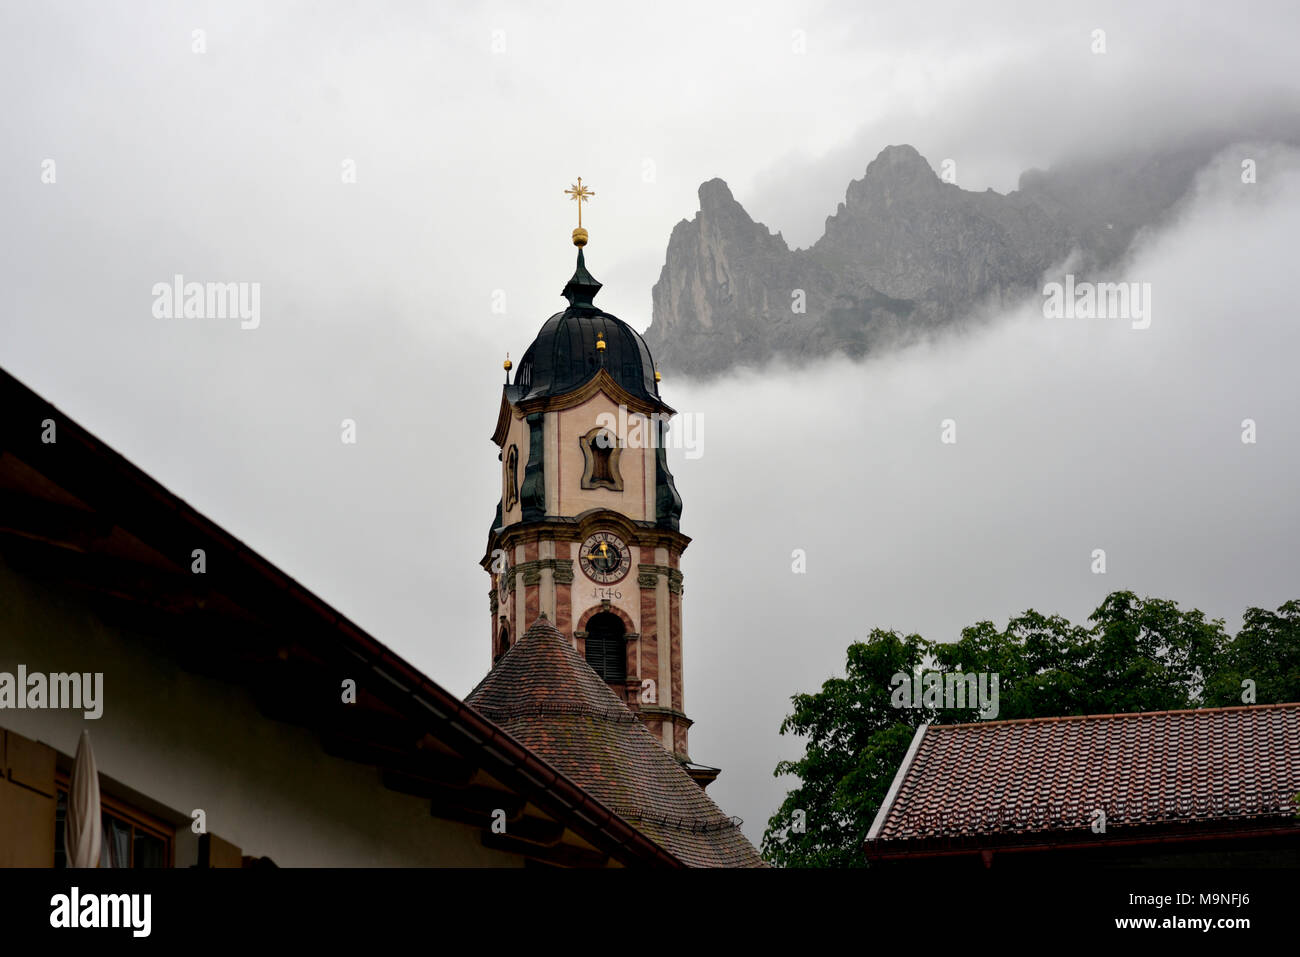 On an overcast, rainy summer day, the peaks of the Zugspitze German Alps peak through rain clouds behind Mittenwald's 1746 church steeple. - Stock Image